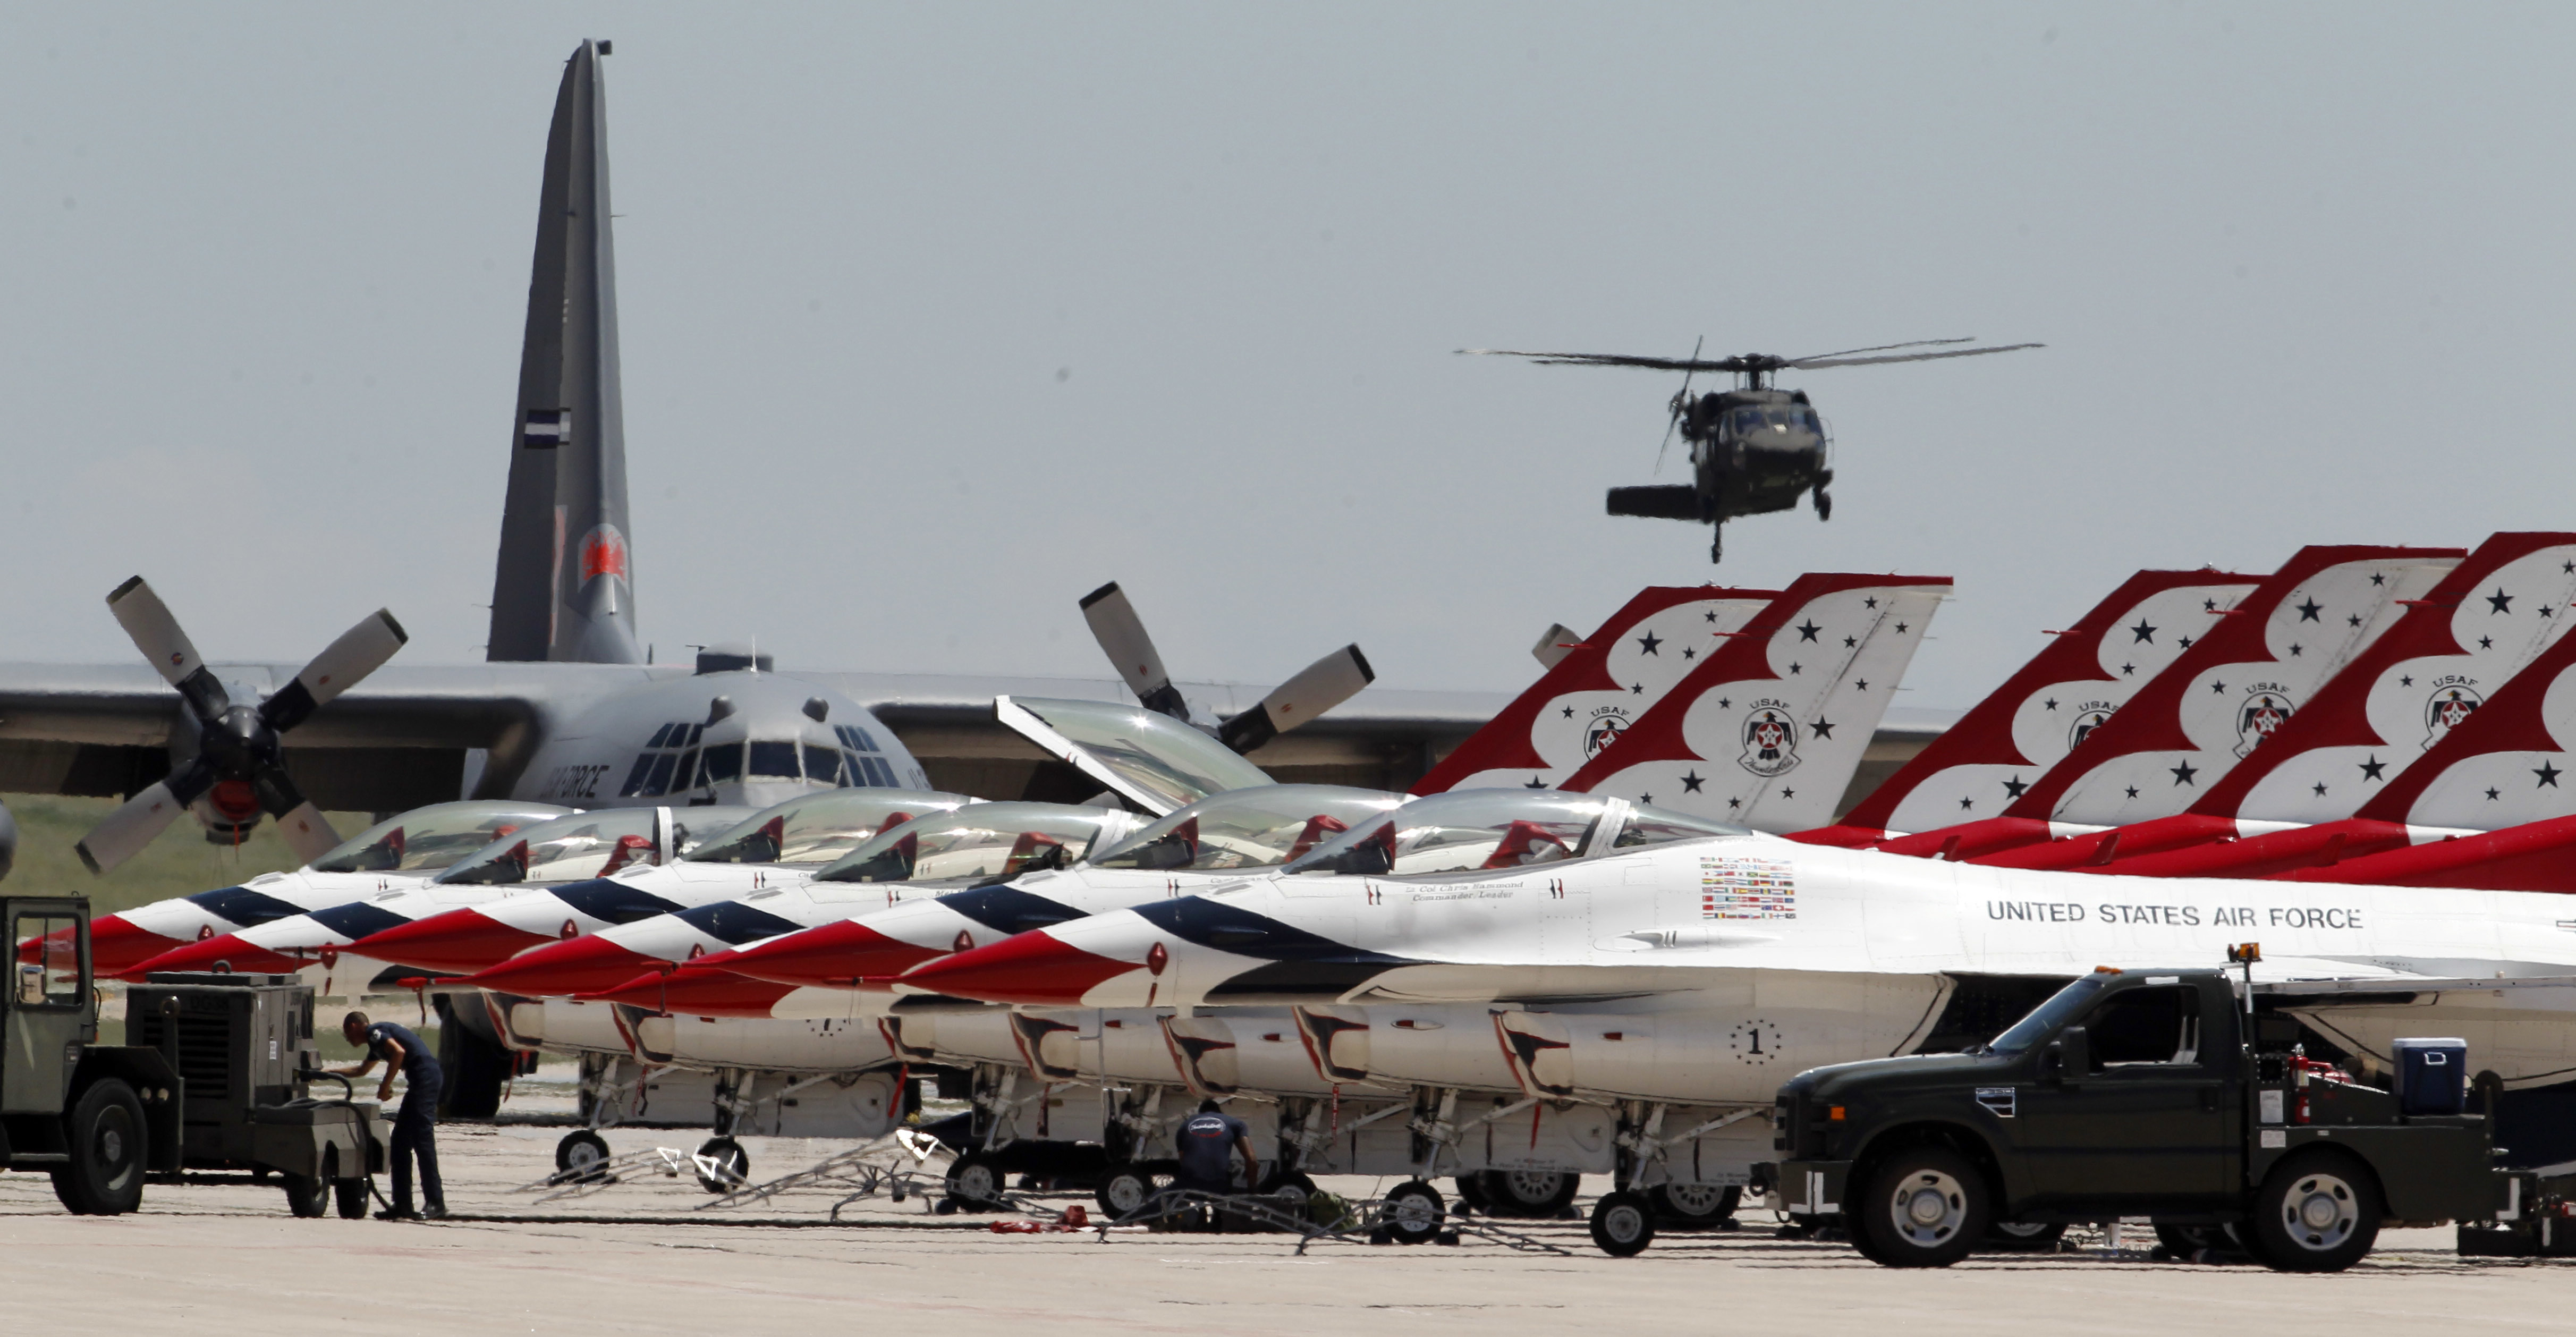 Photo: Thunderbirds line up at Peterson AFB